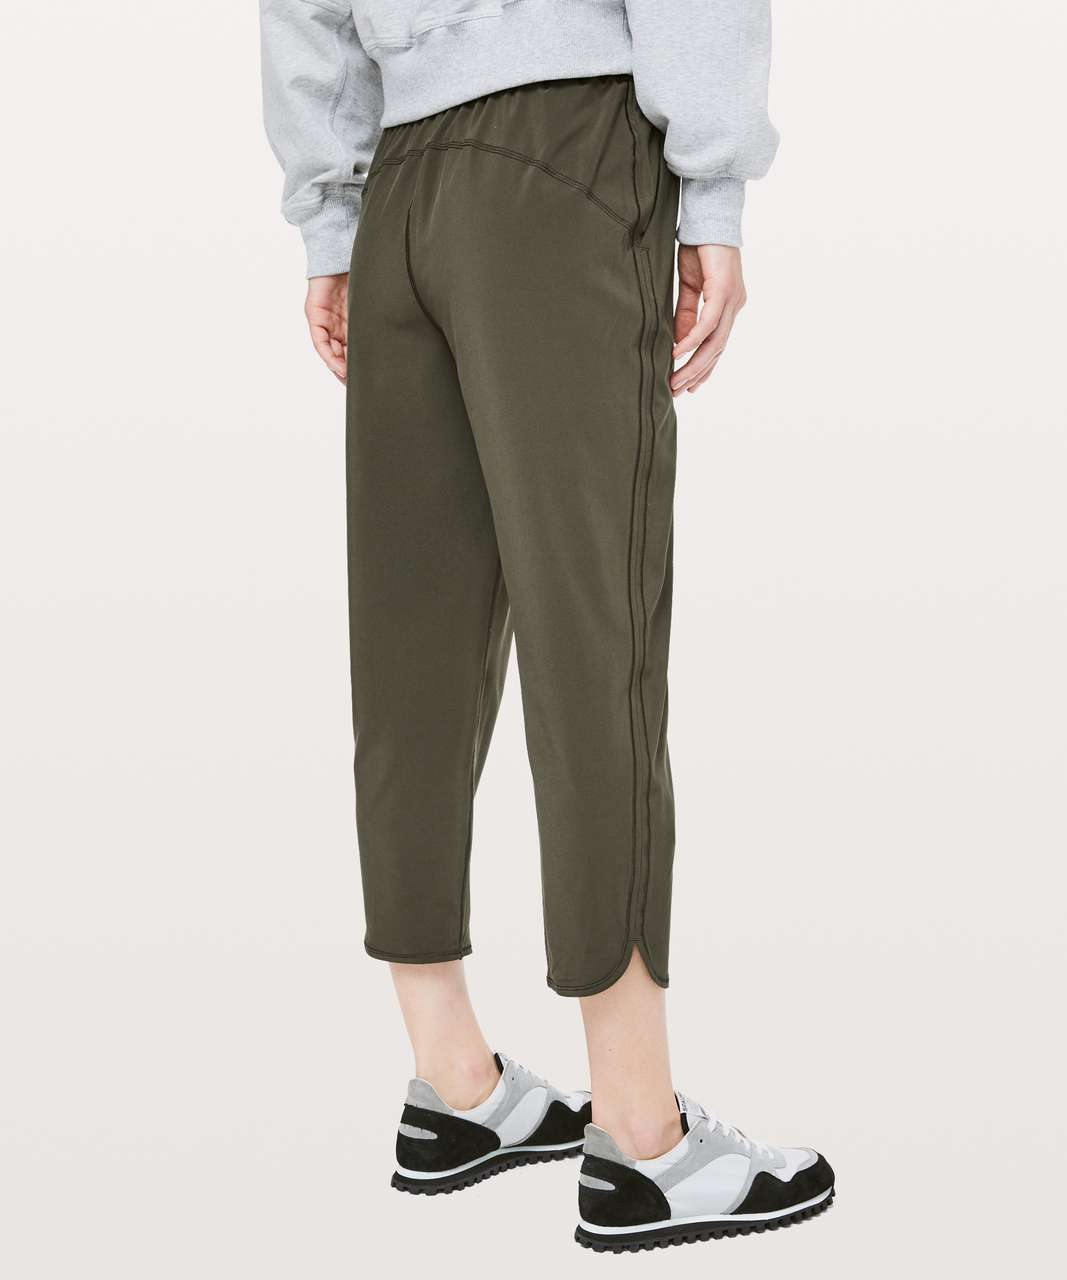 "Lululemon Keep It Classic Crop 23"" - Dark Olive"